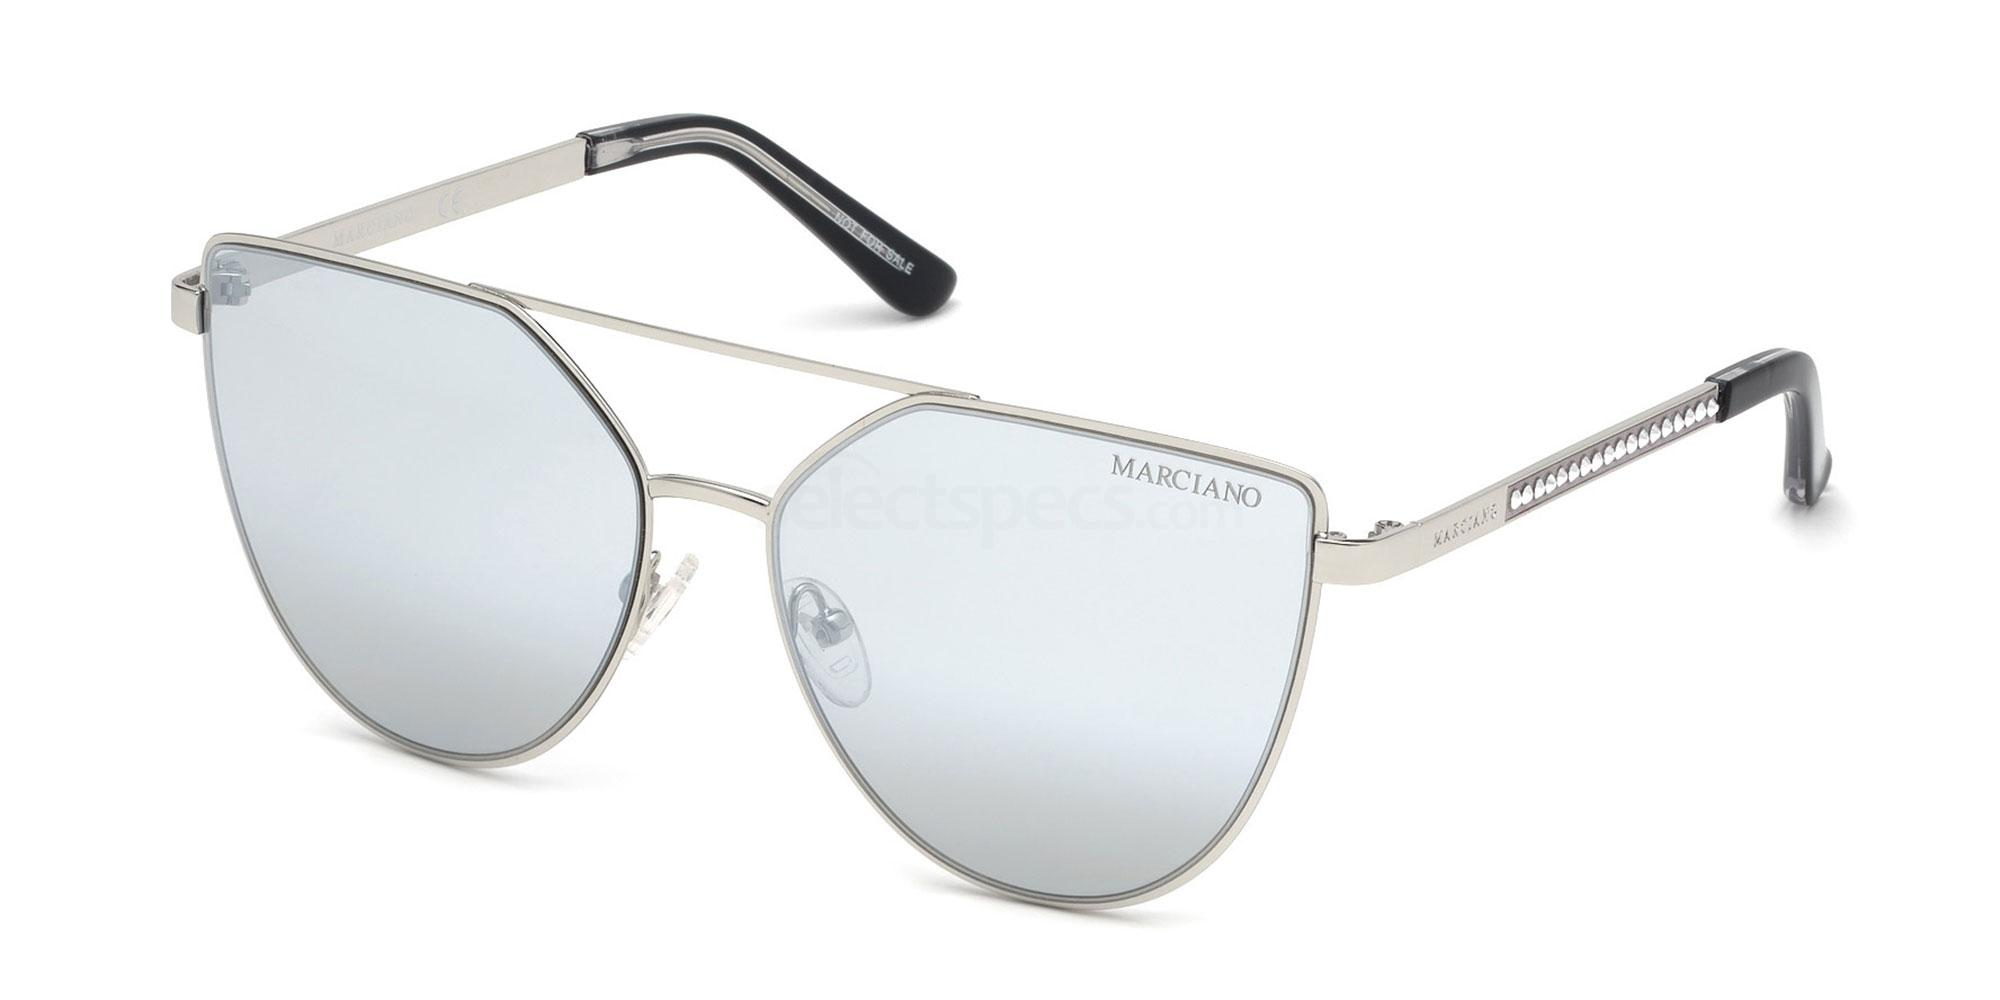 10C GM0778 Sunglasses, Guess by Marciano